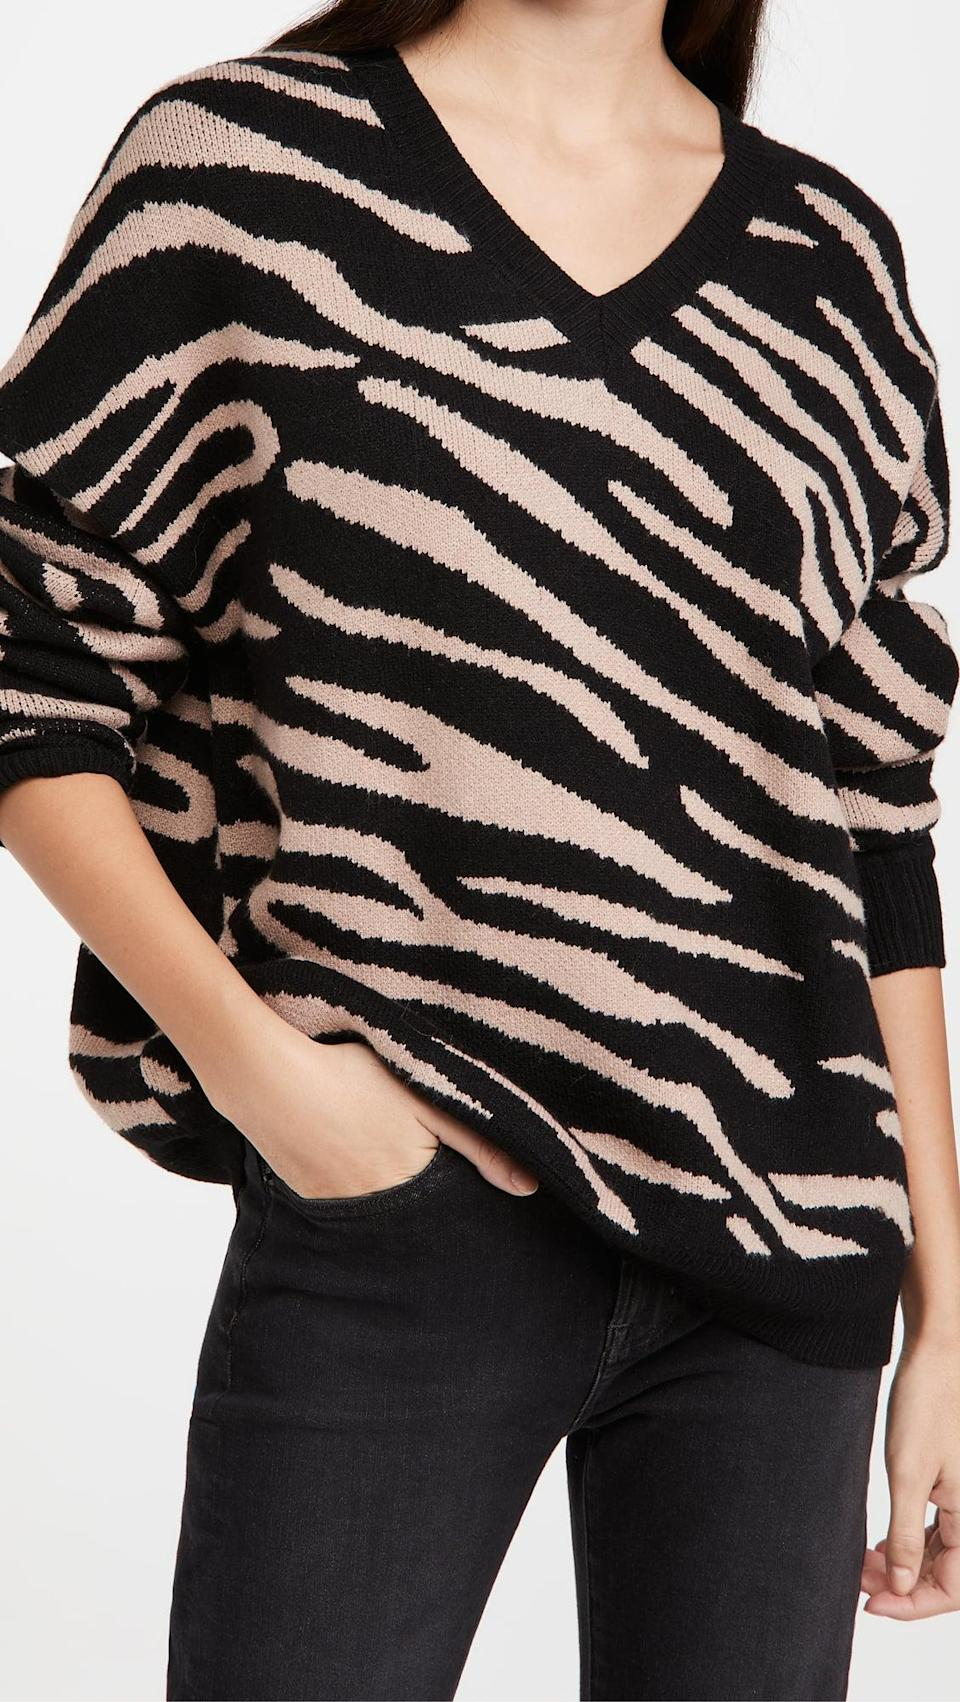 <p>Go for a bold statement with this animal print <span>Beach Riot Joie Sweater</span> ($77, originally $128).</p>